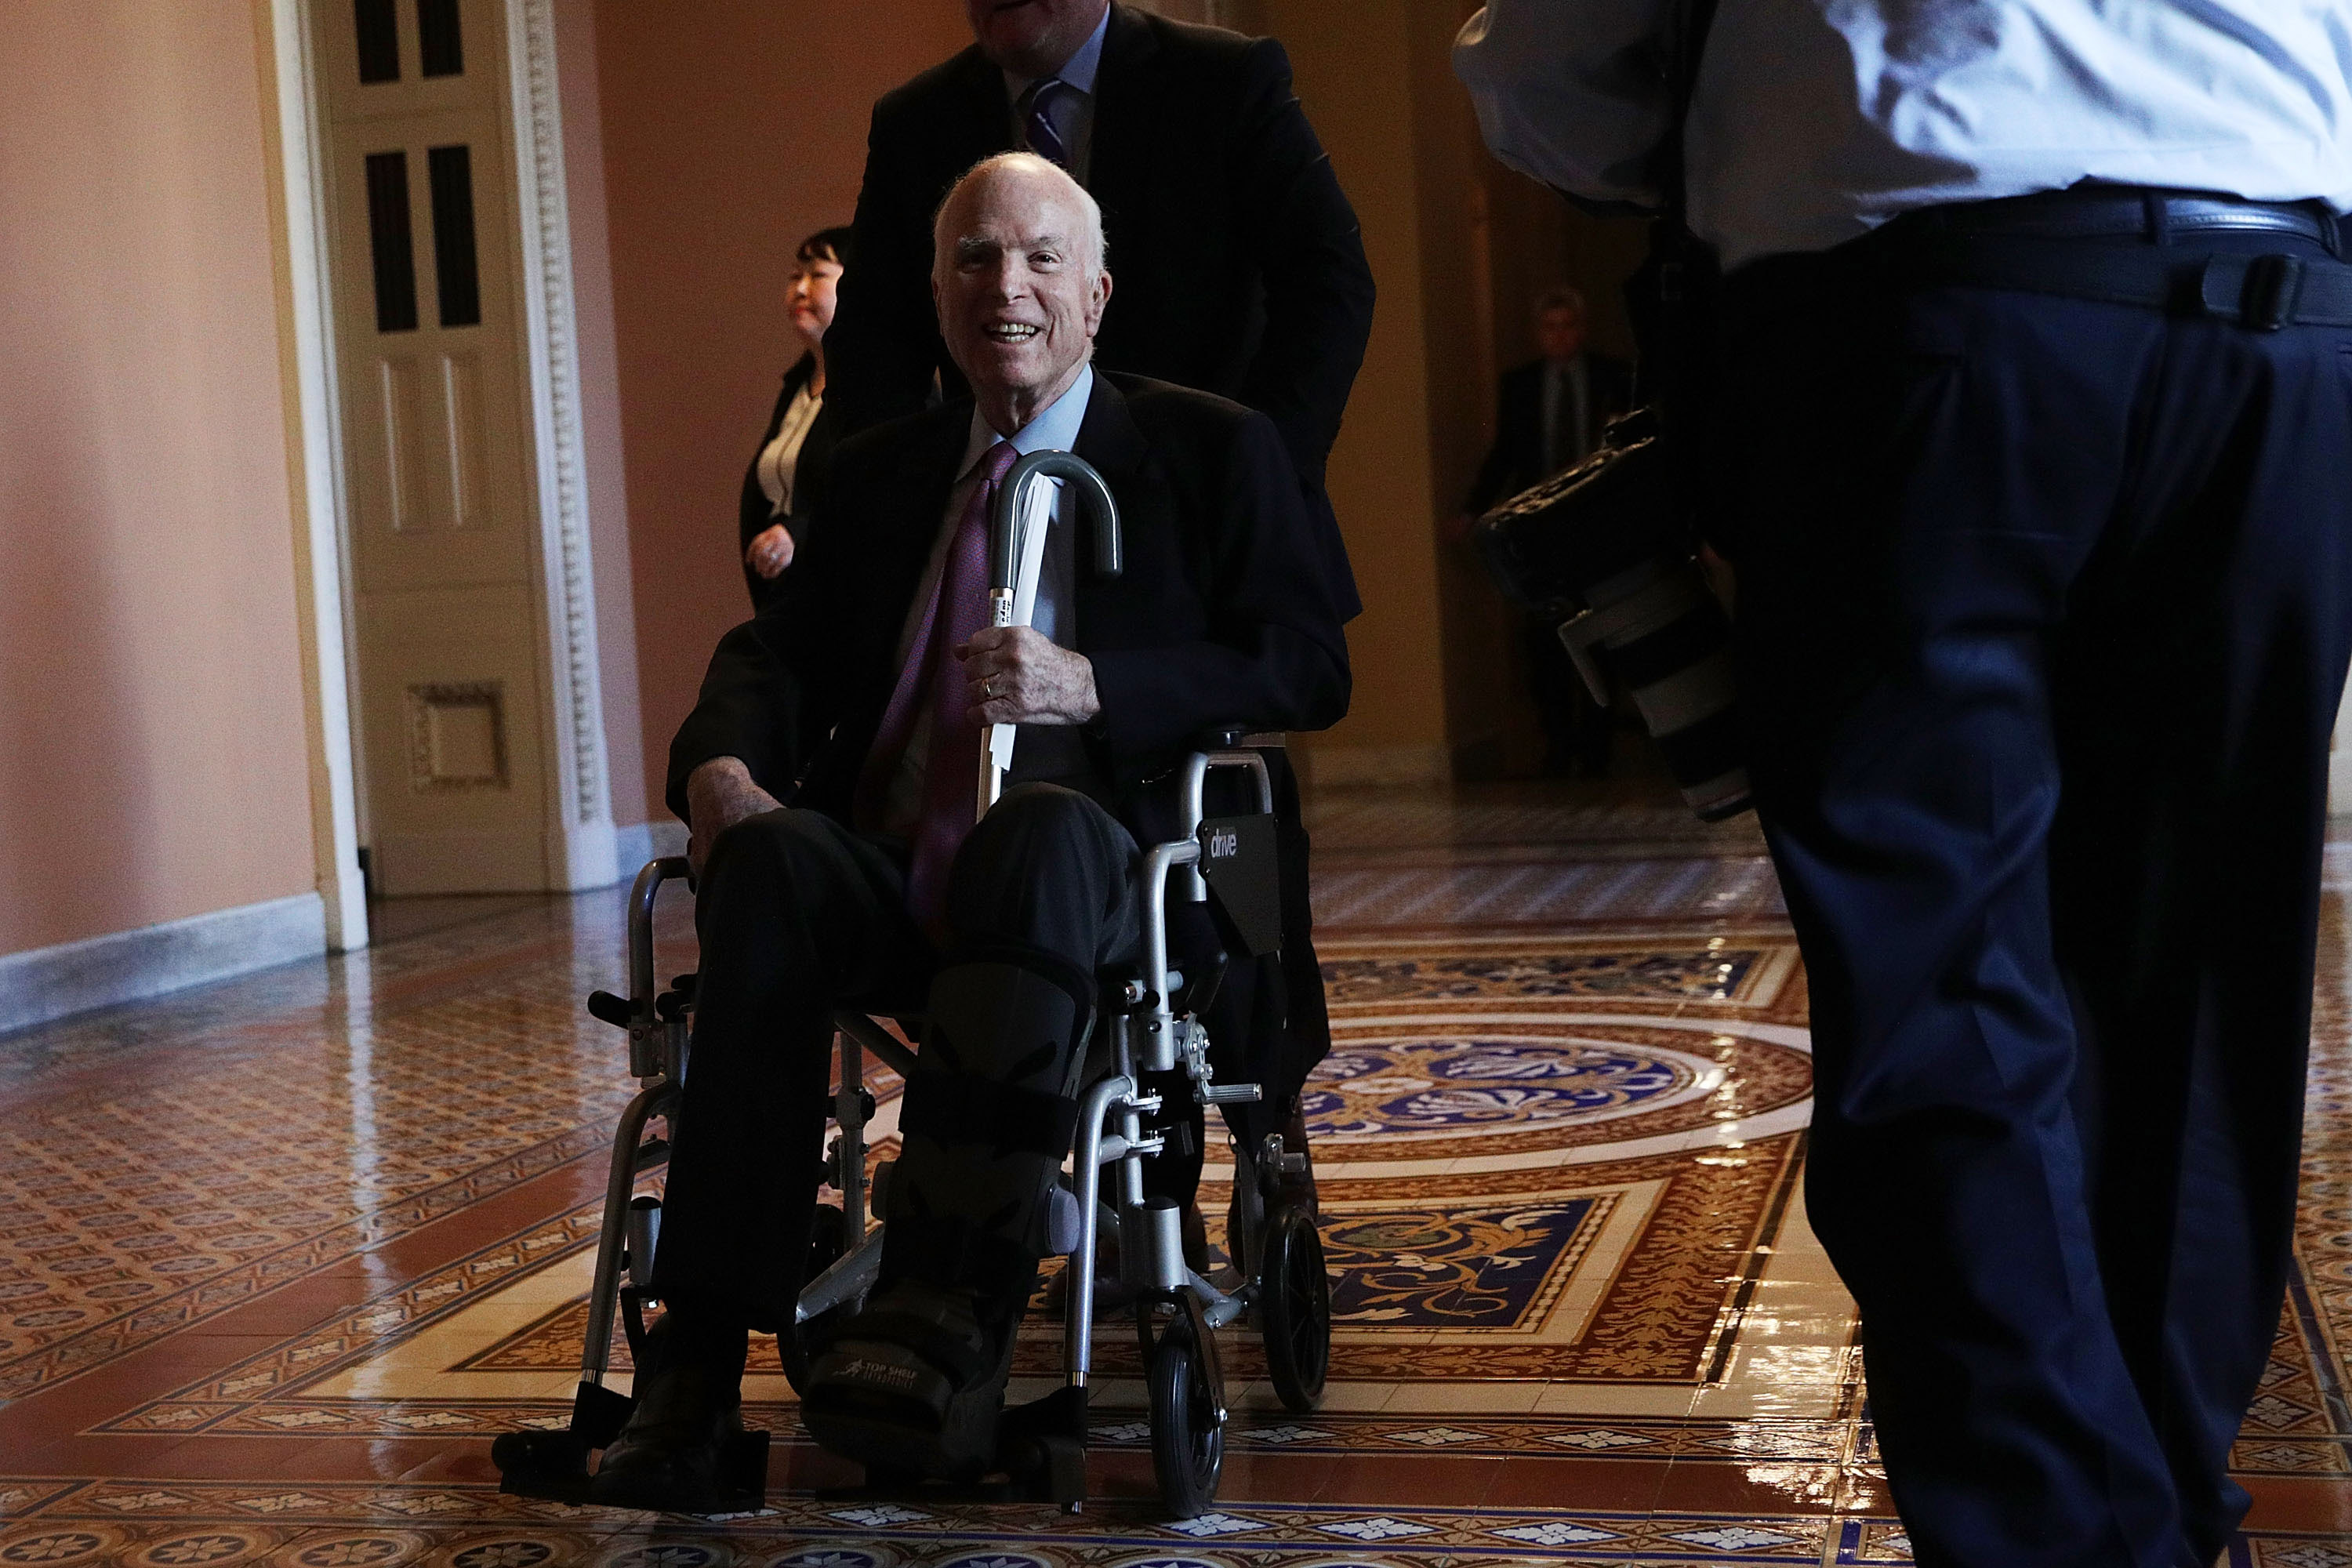 U.S. Sen. John McCain (R-AZ) passes by on a wheelchair in a hallway at the Capitol December 1, 2017 in Washington, DC. Senate GOPs indicate that they have enough votes to pass the tax reform bill. (Getty Images)